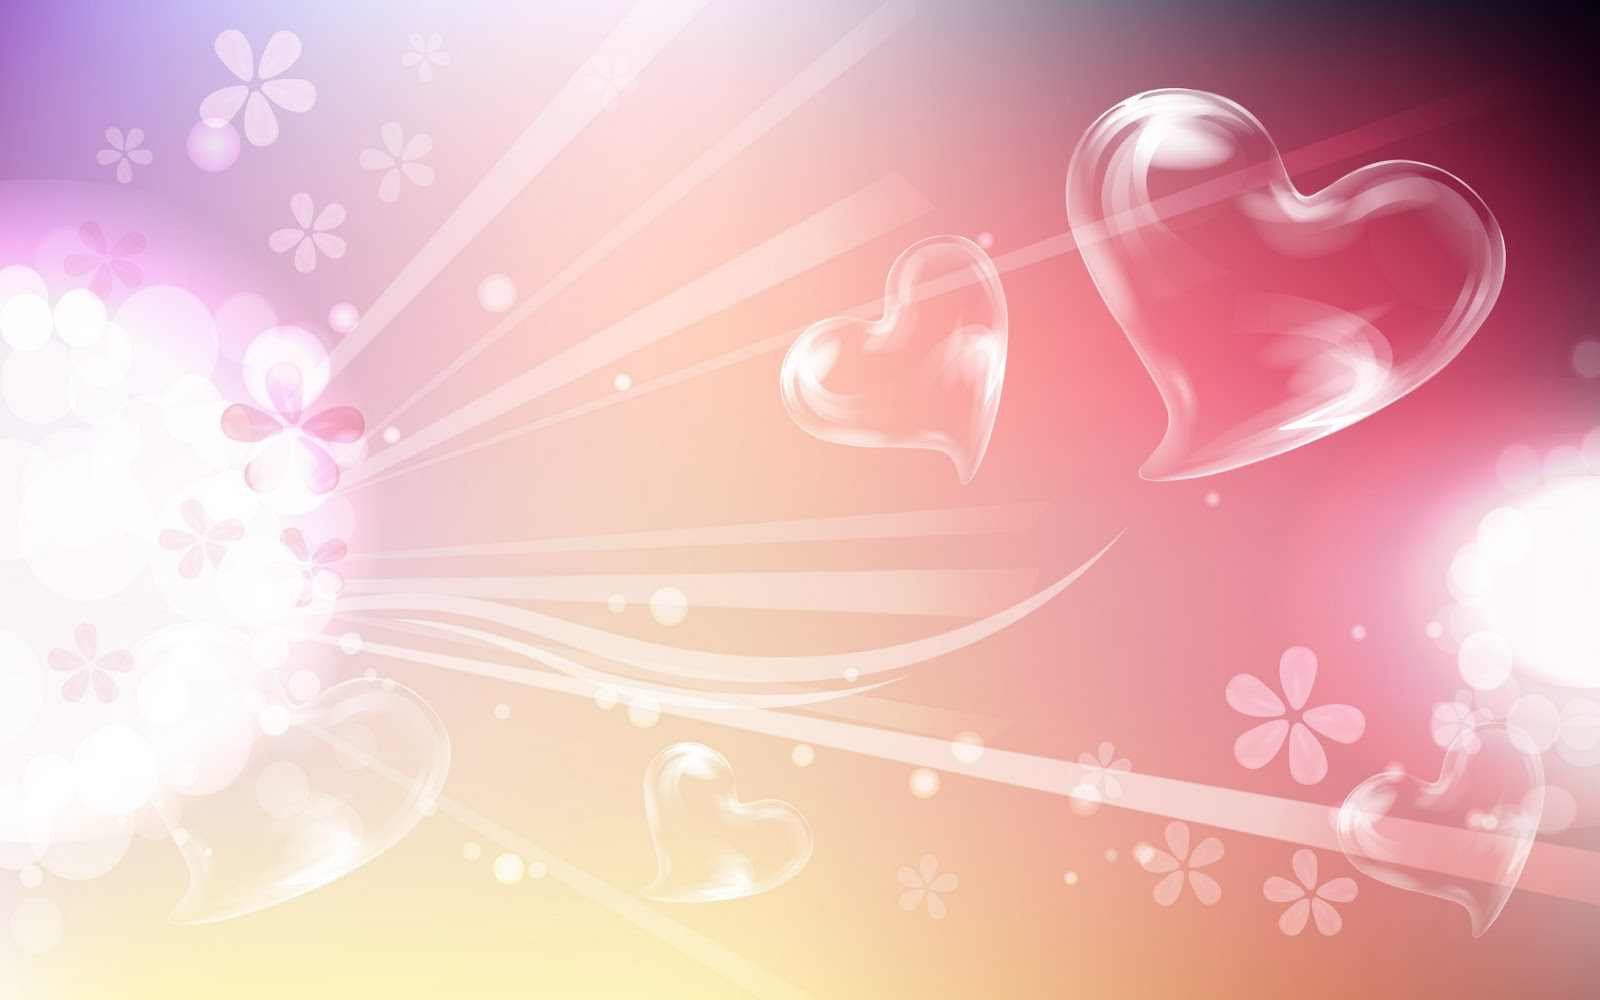 stunning love backgrounds 18162